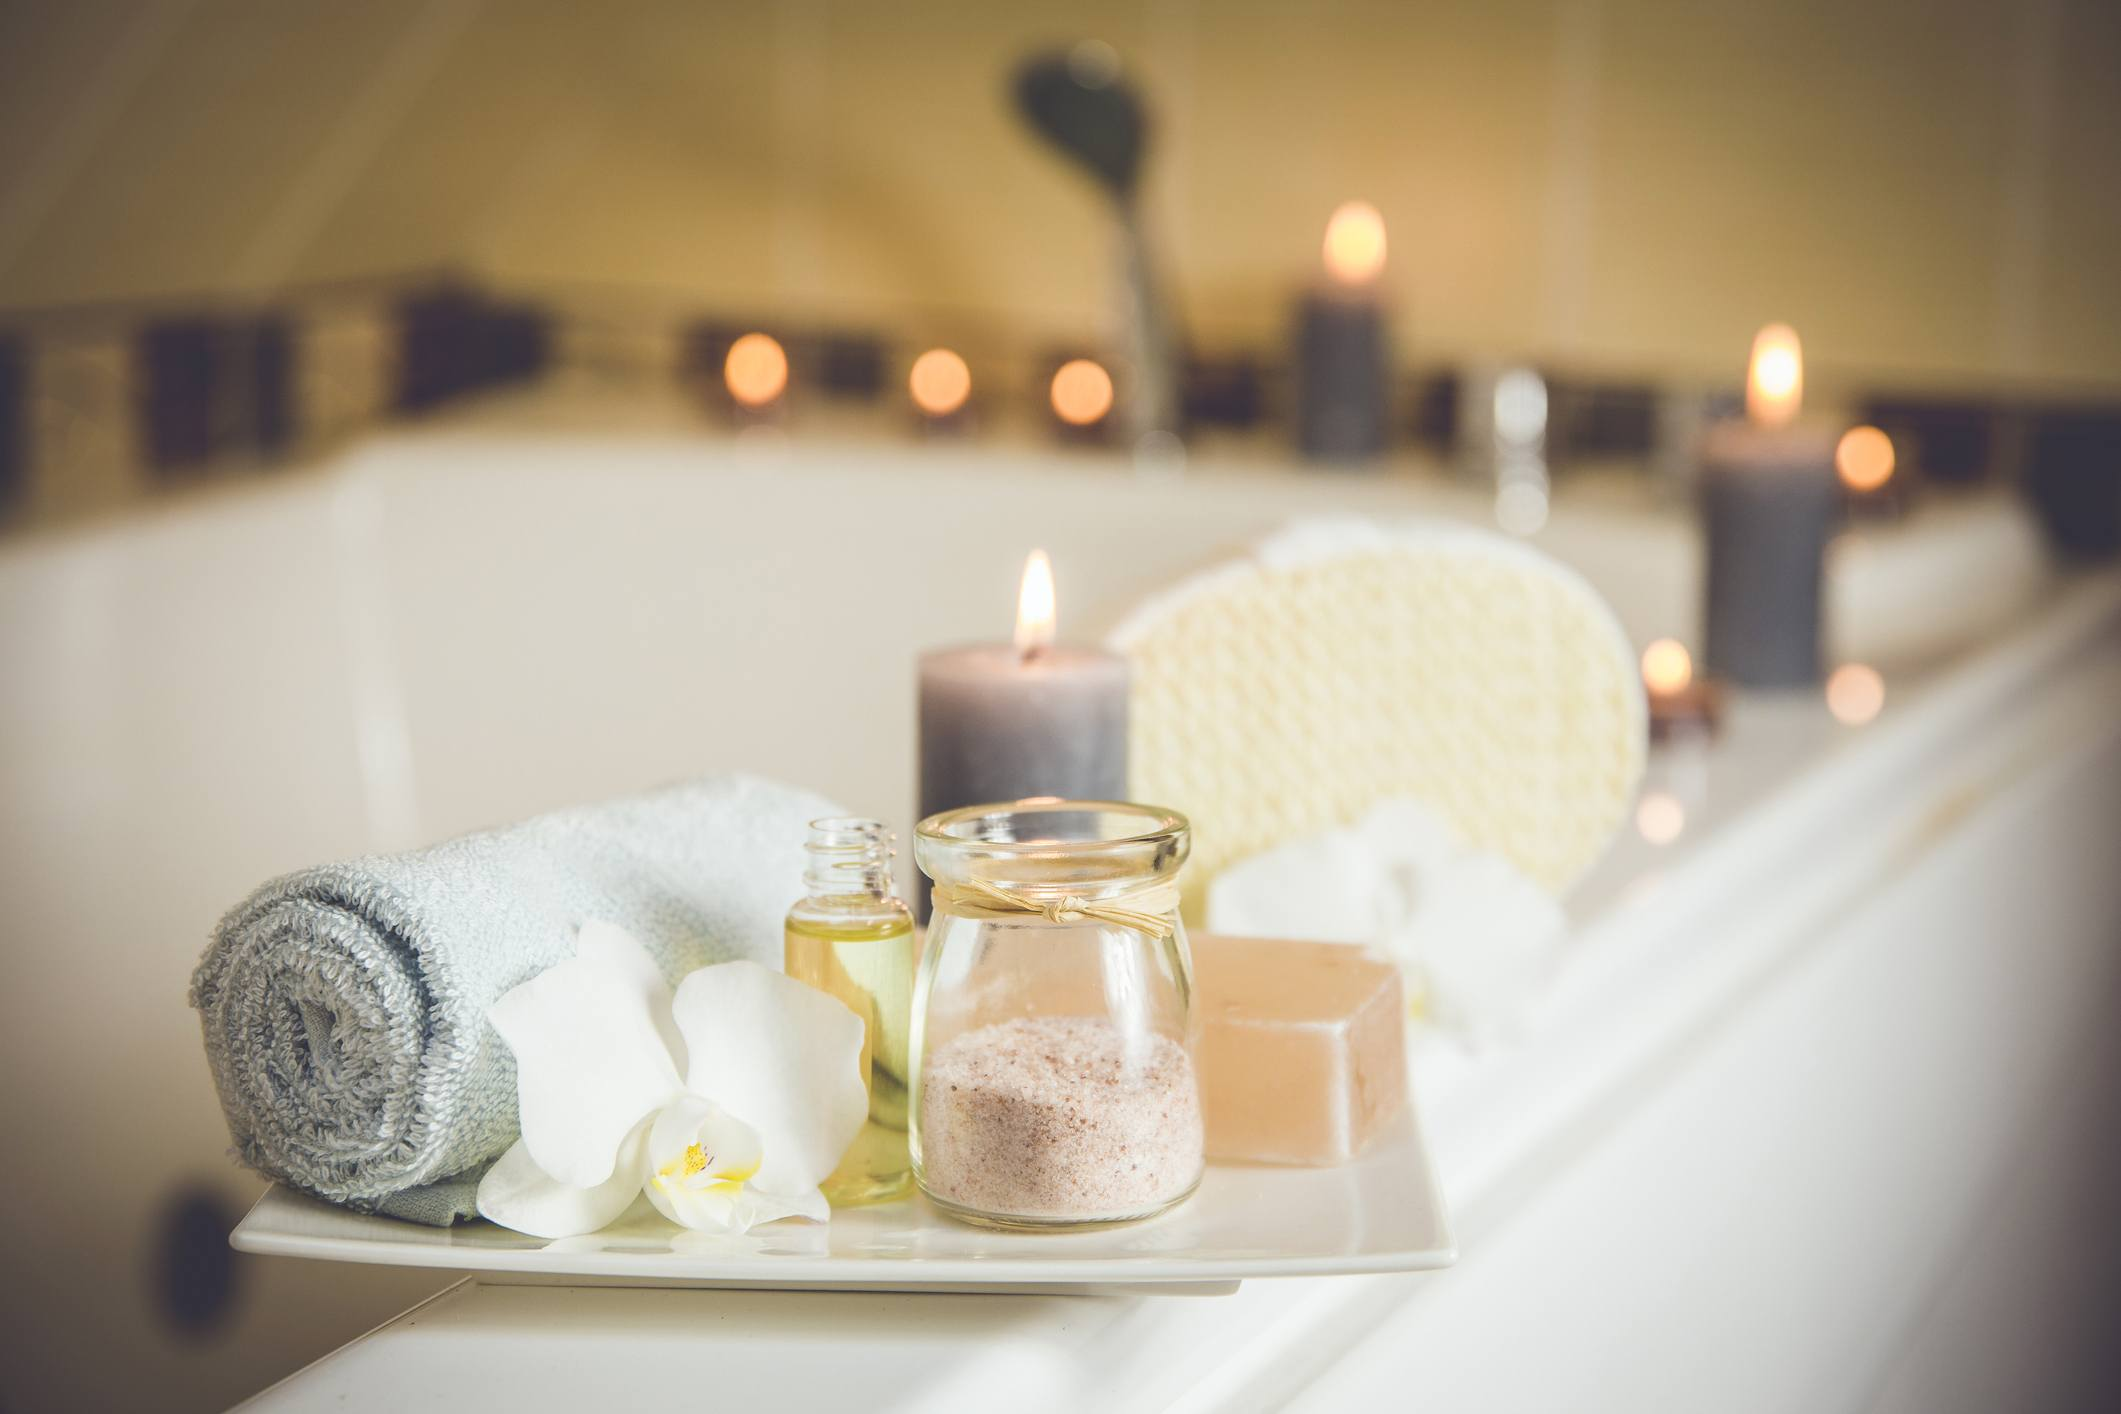 bathtub arrangement with scented candles, towels, and decorations